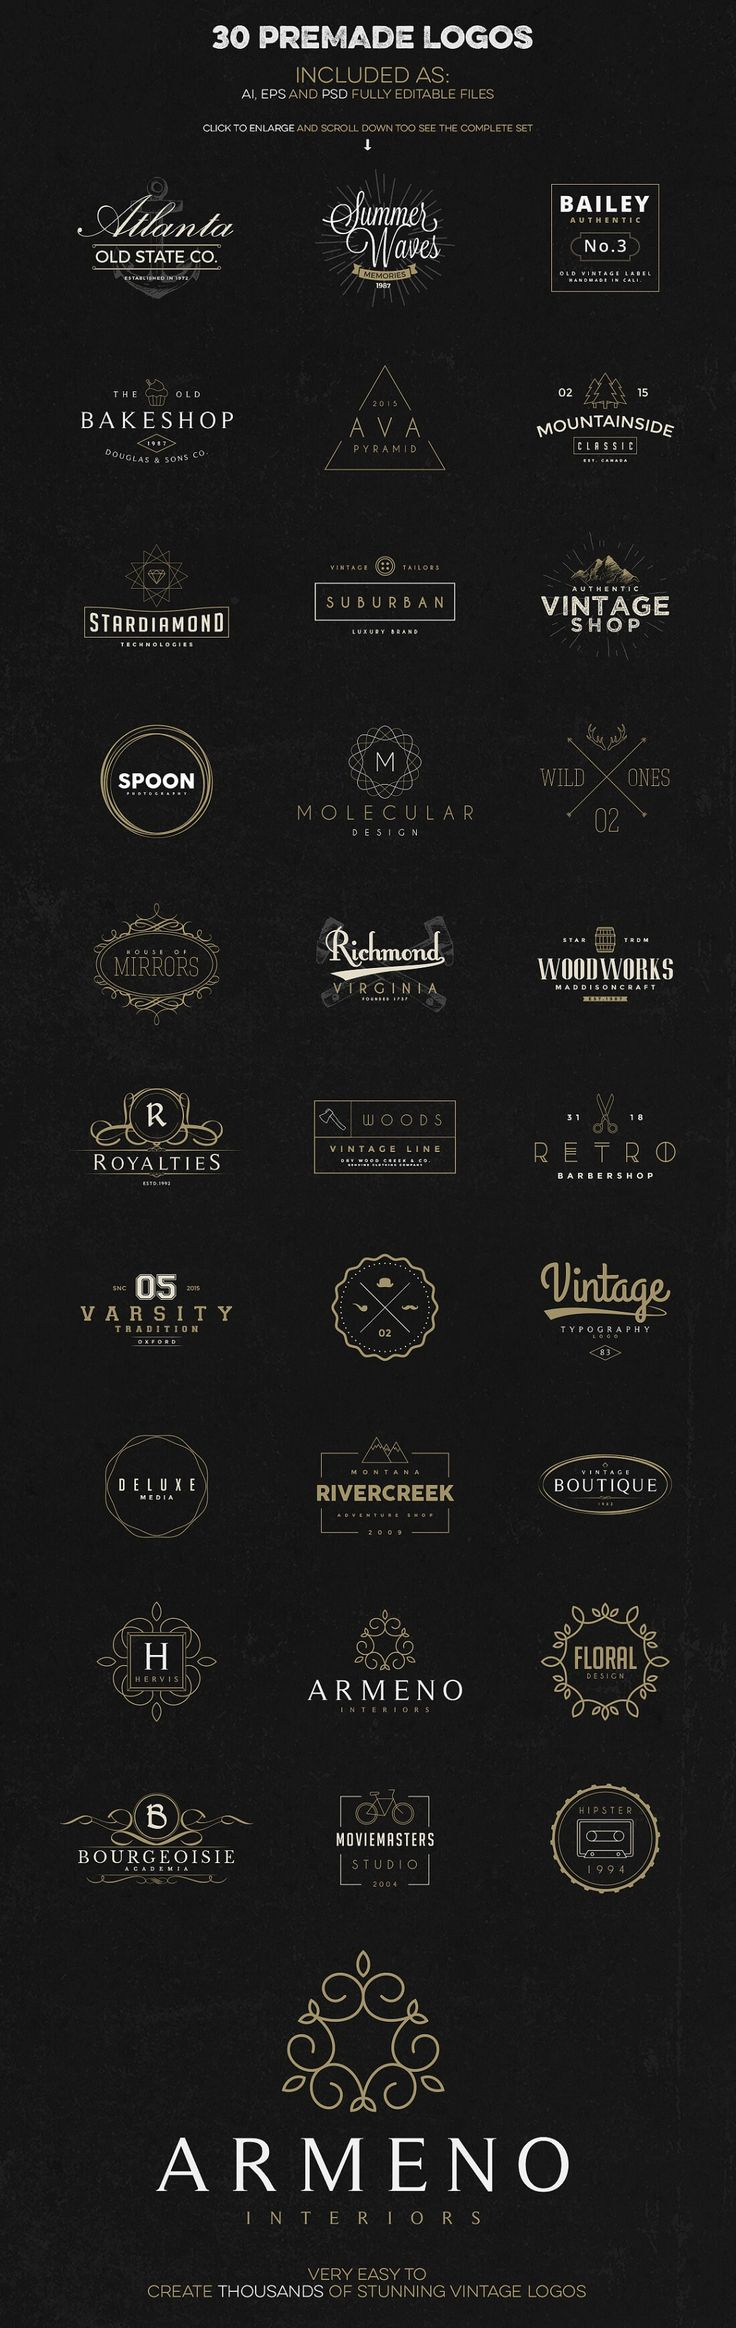 Professional Logo Creation Kit Bundle with 500+ Elements - only 14! - MightyDeals